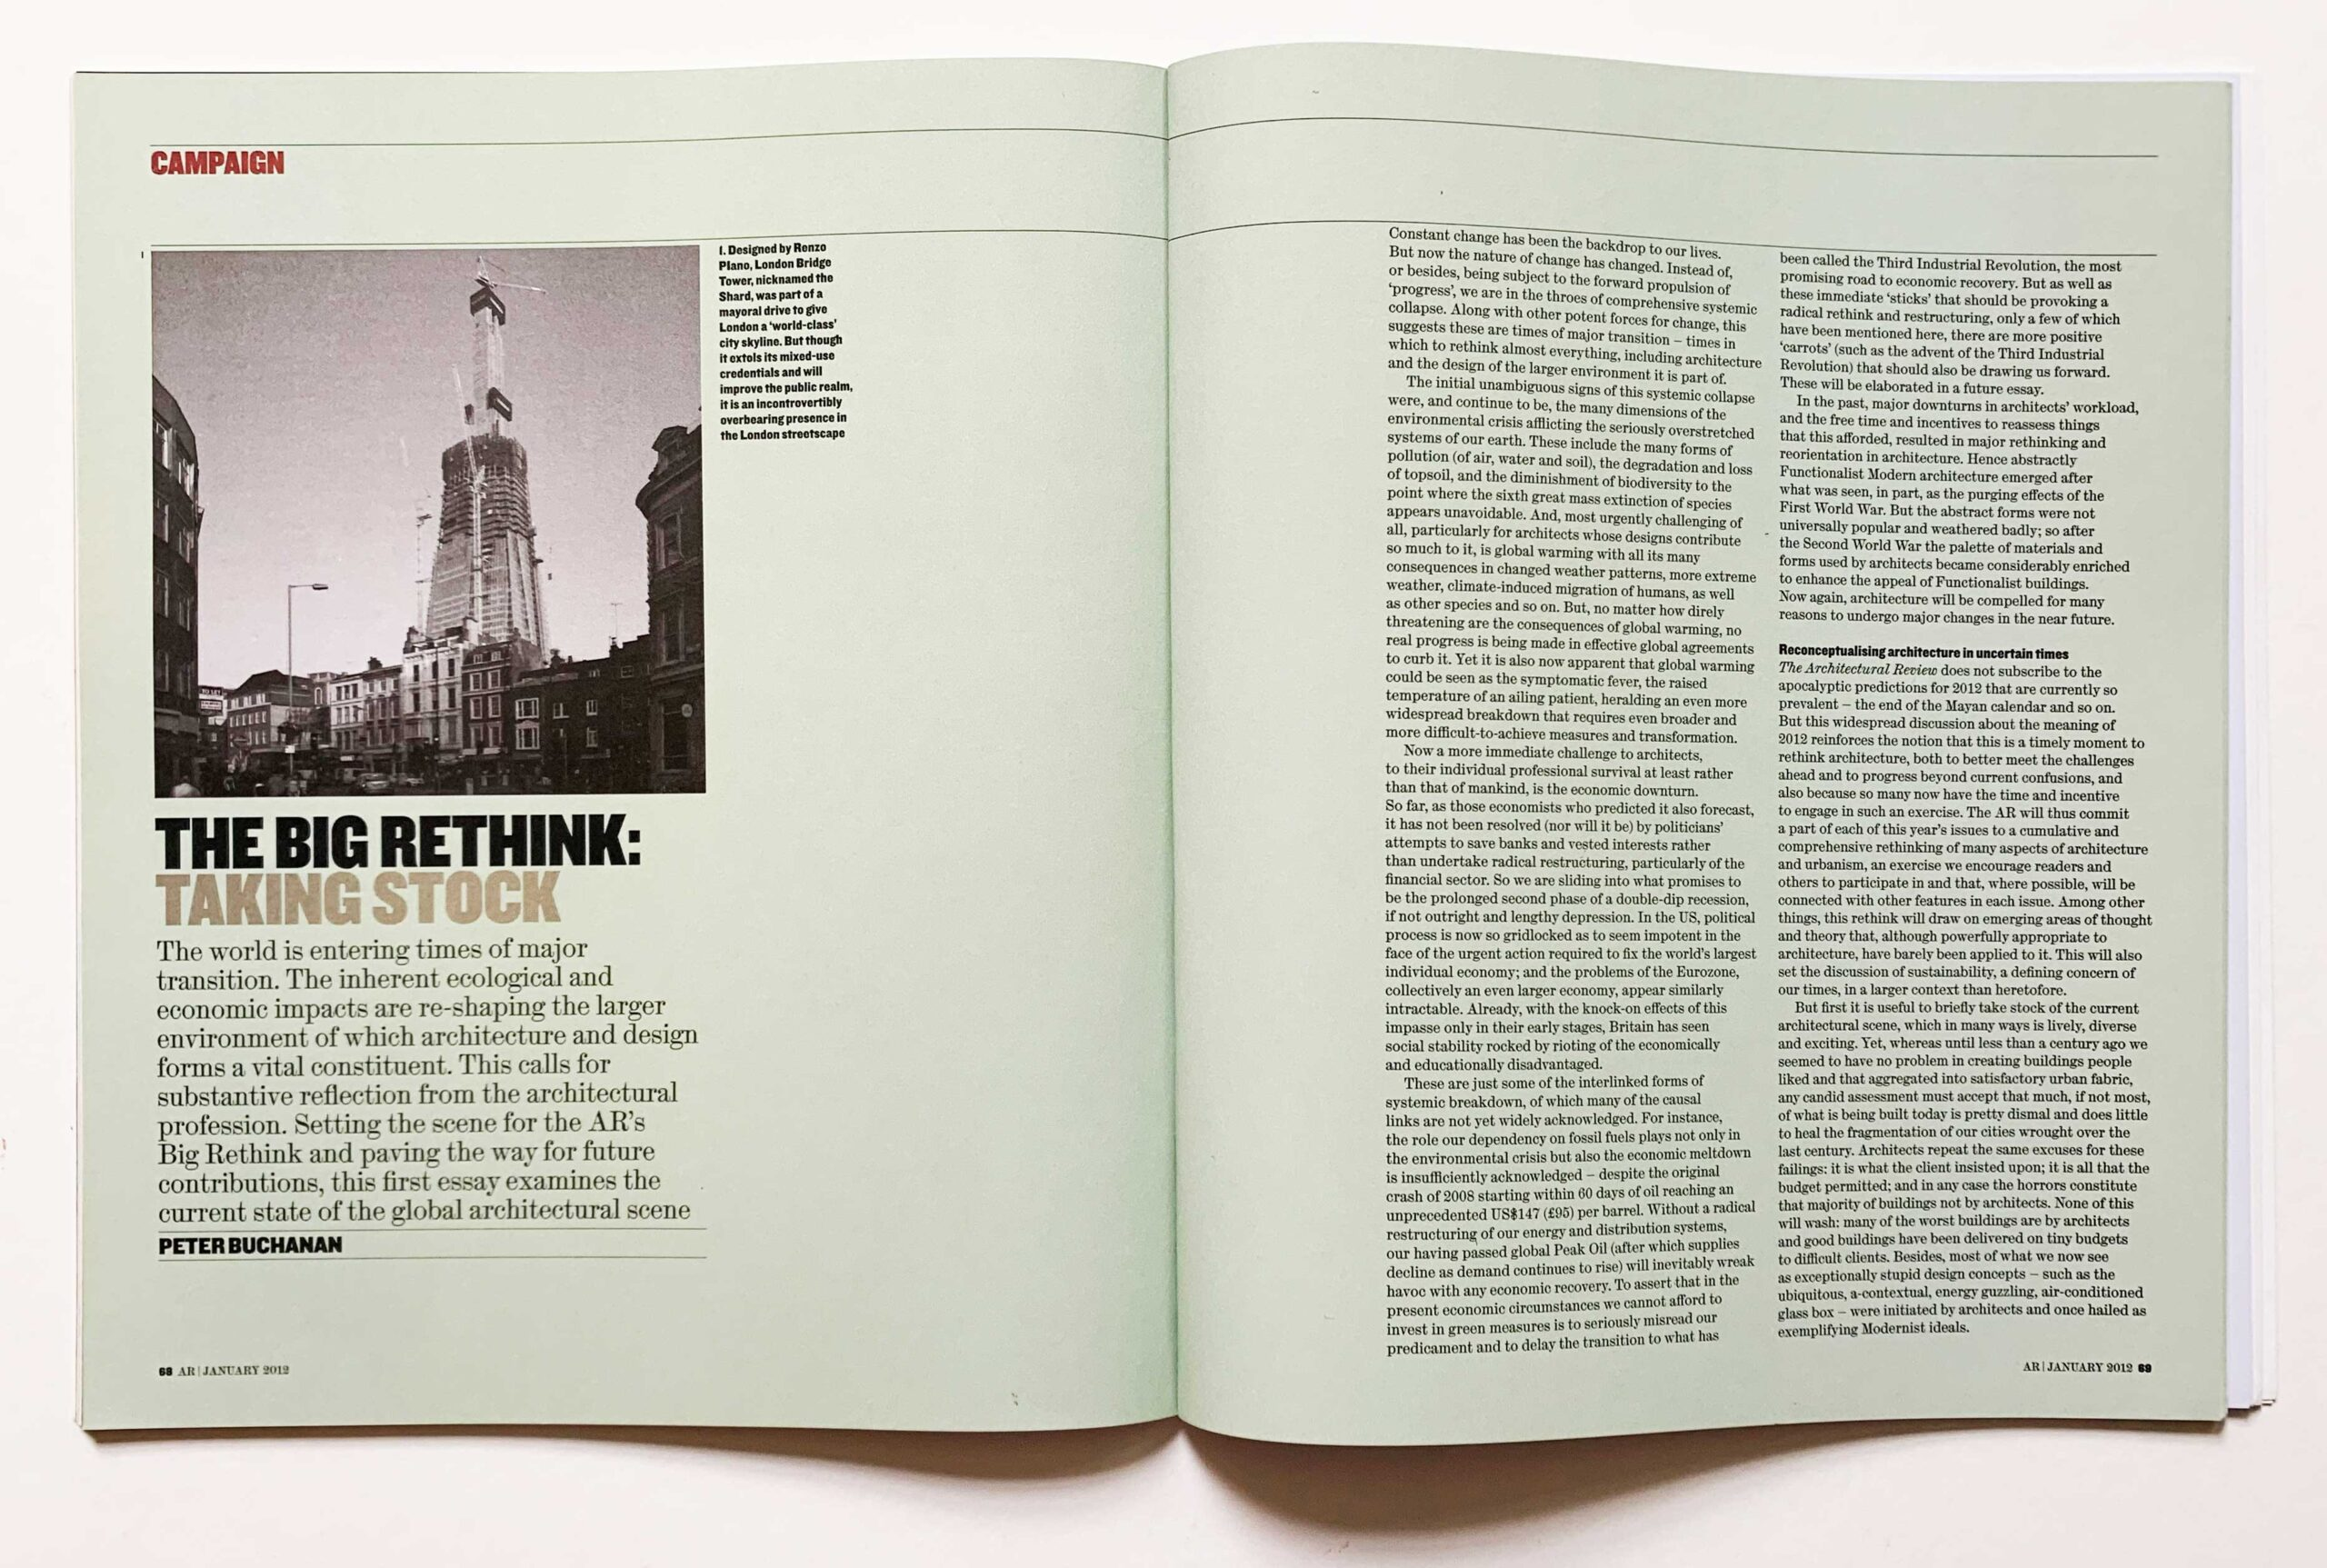 Fig. 8. Peter Buchanan's year-long campaign The Big Rethink in The Architectural Review was highly influential on the aspirations for the new school.